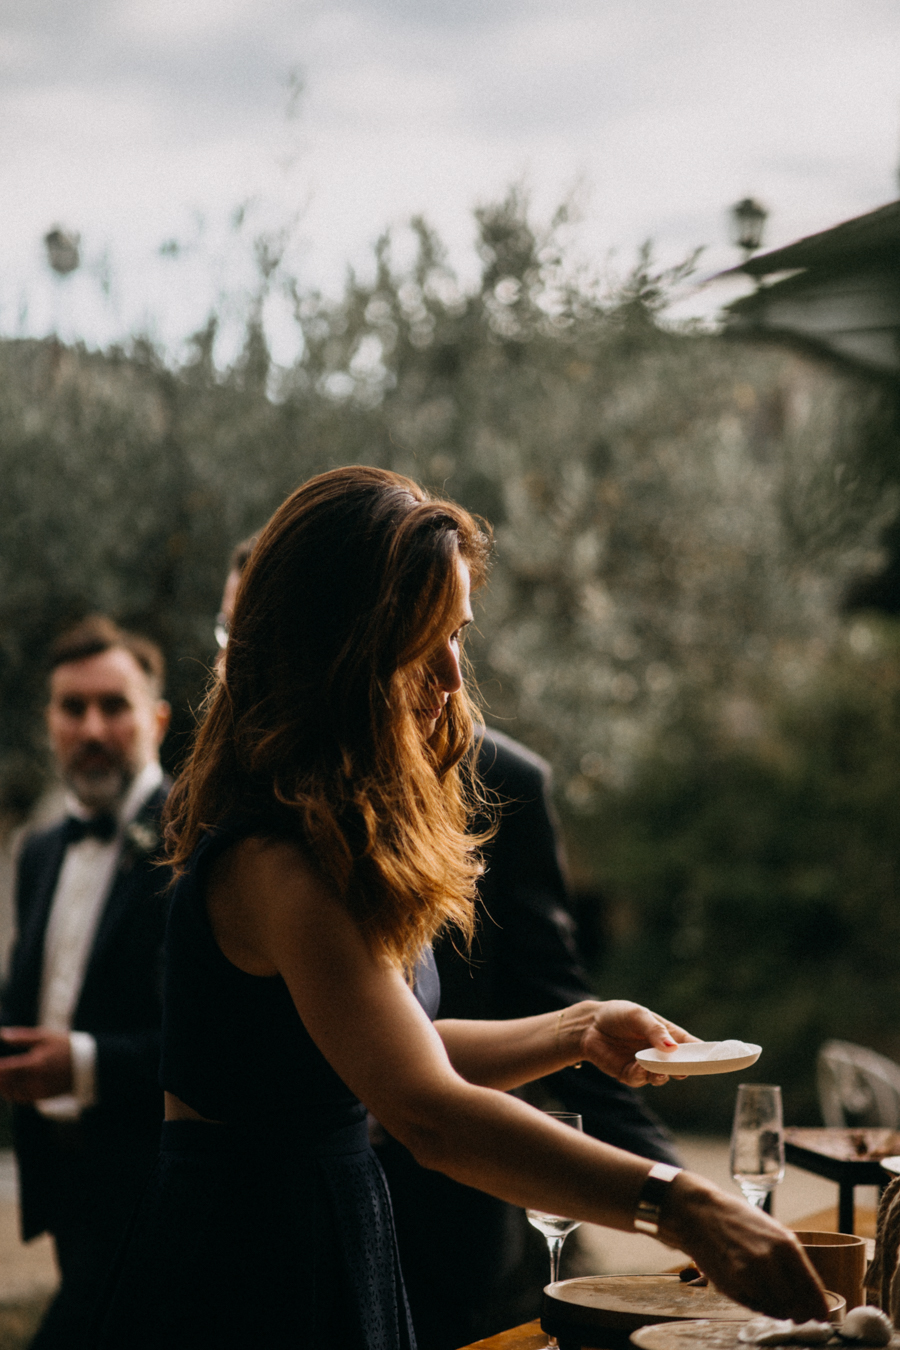 Photographe mariage seance photo wedding reportage couple love session domaine de patras provence-119